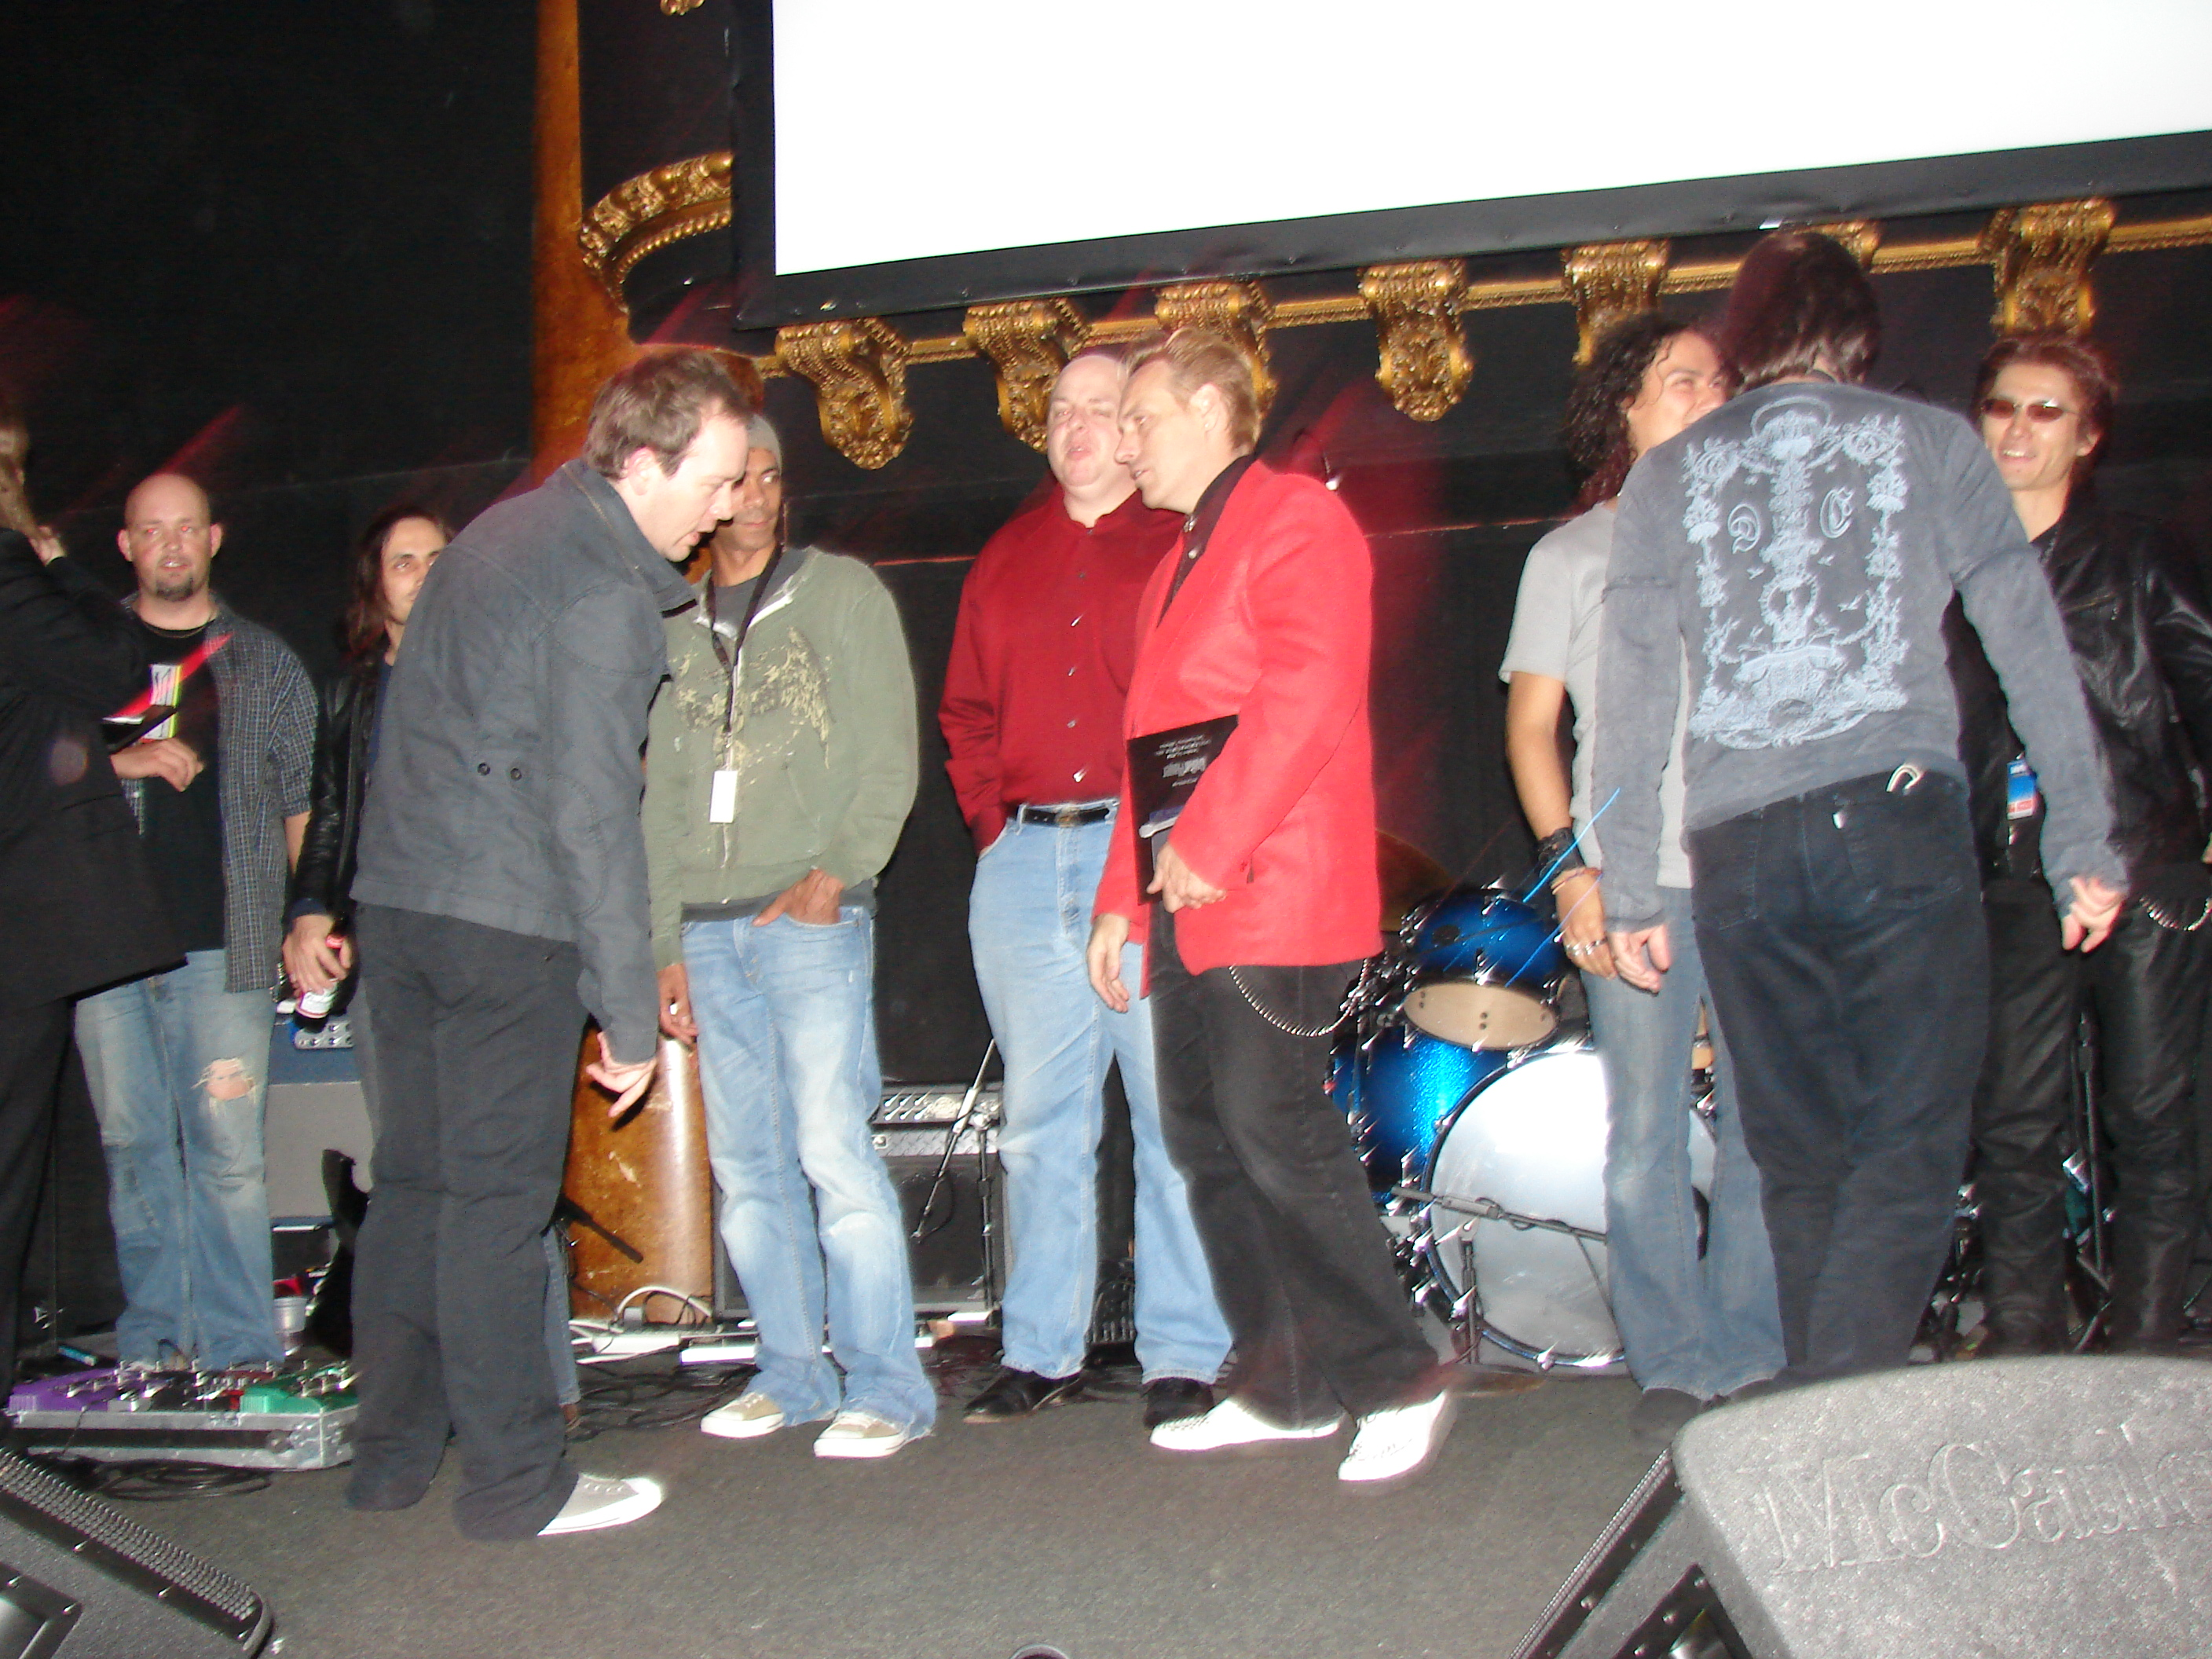 @guitar hero 2007 Nuno, Greg Howe, Joe Satriani, Steve Lukather,Mike Varney were as guest judge. taka played AngelWing in 2007 San Francisco